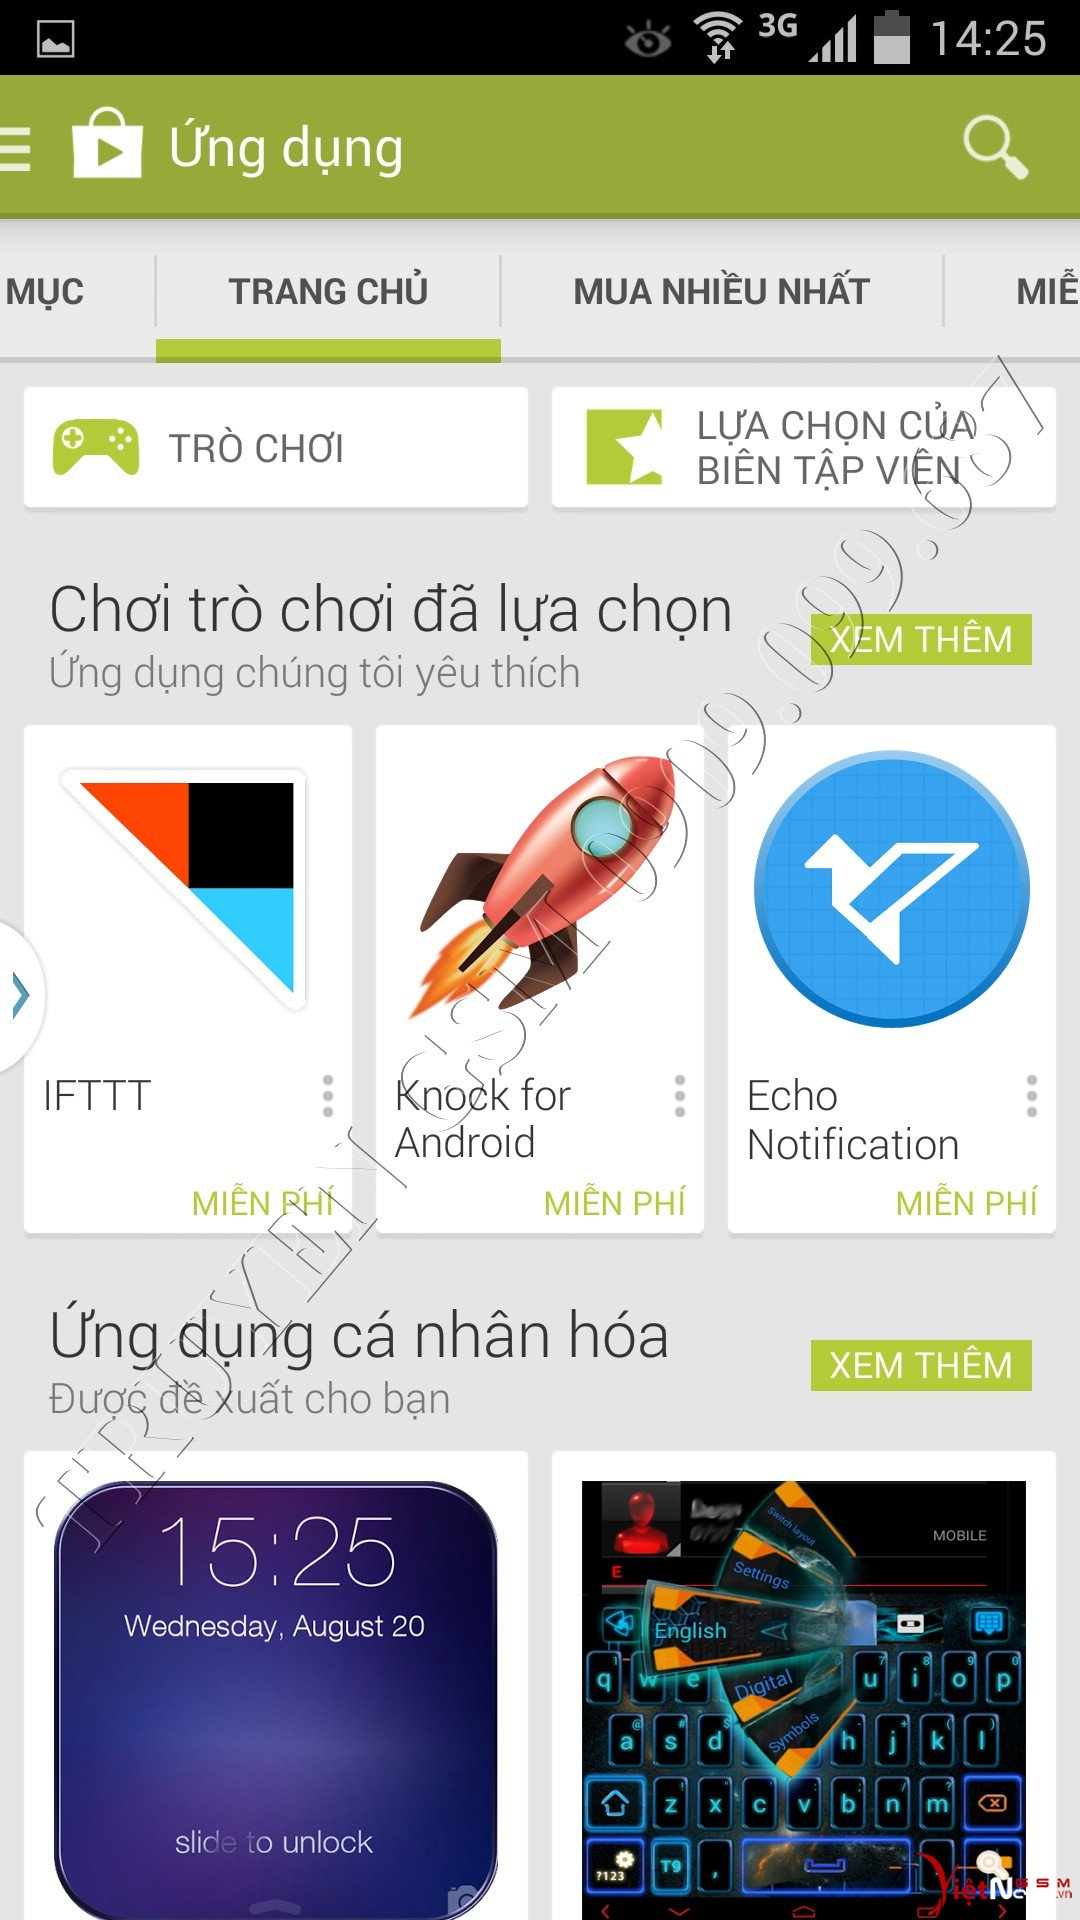 Screenshot_2014-09-15-14-25-36.jpg